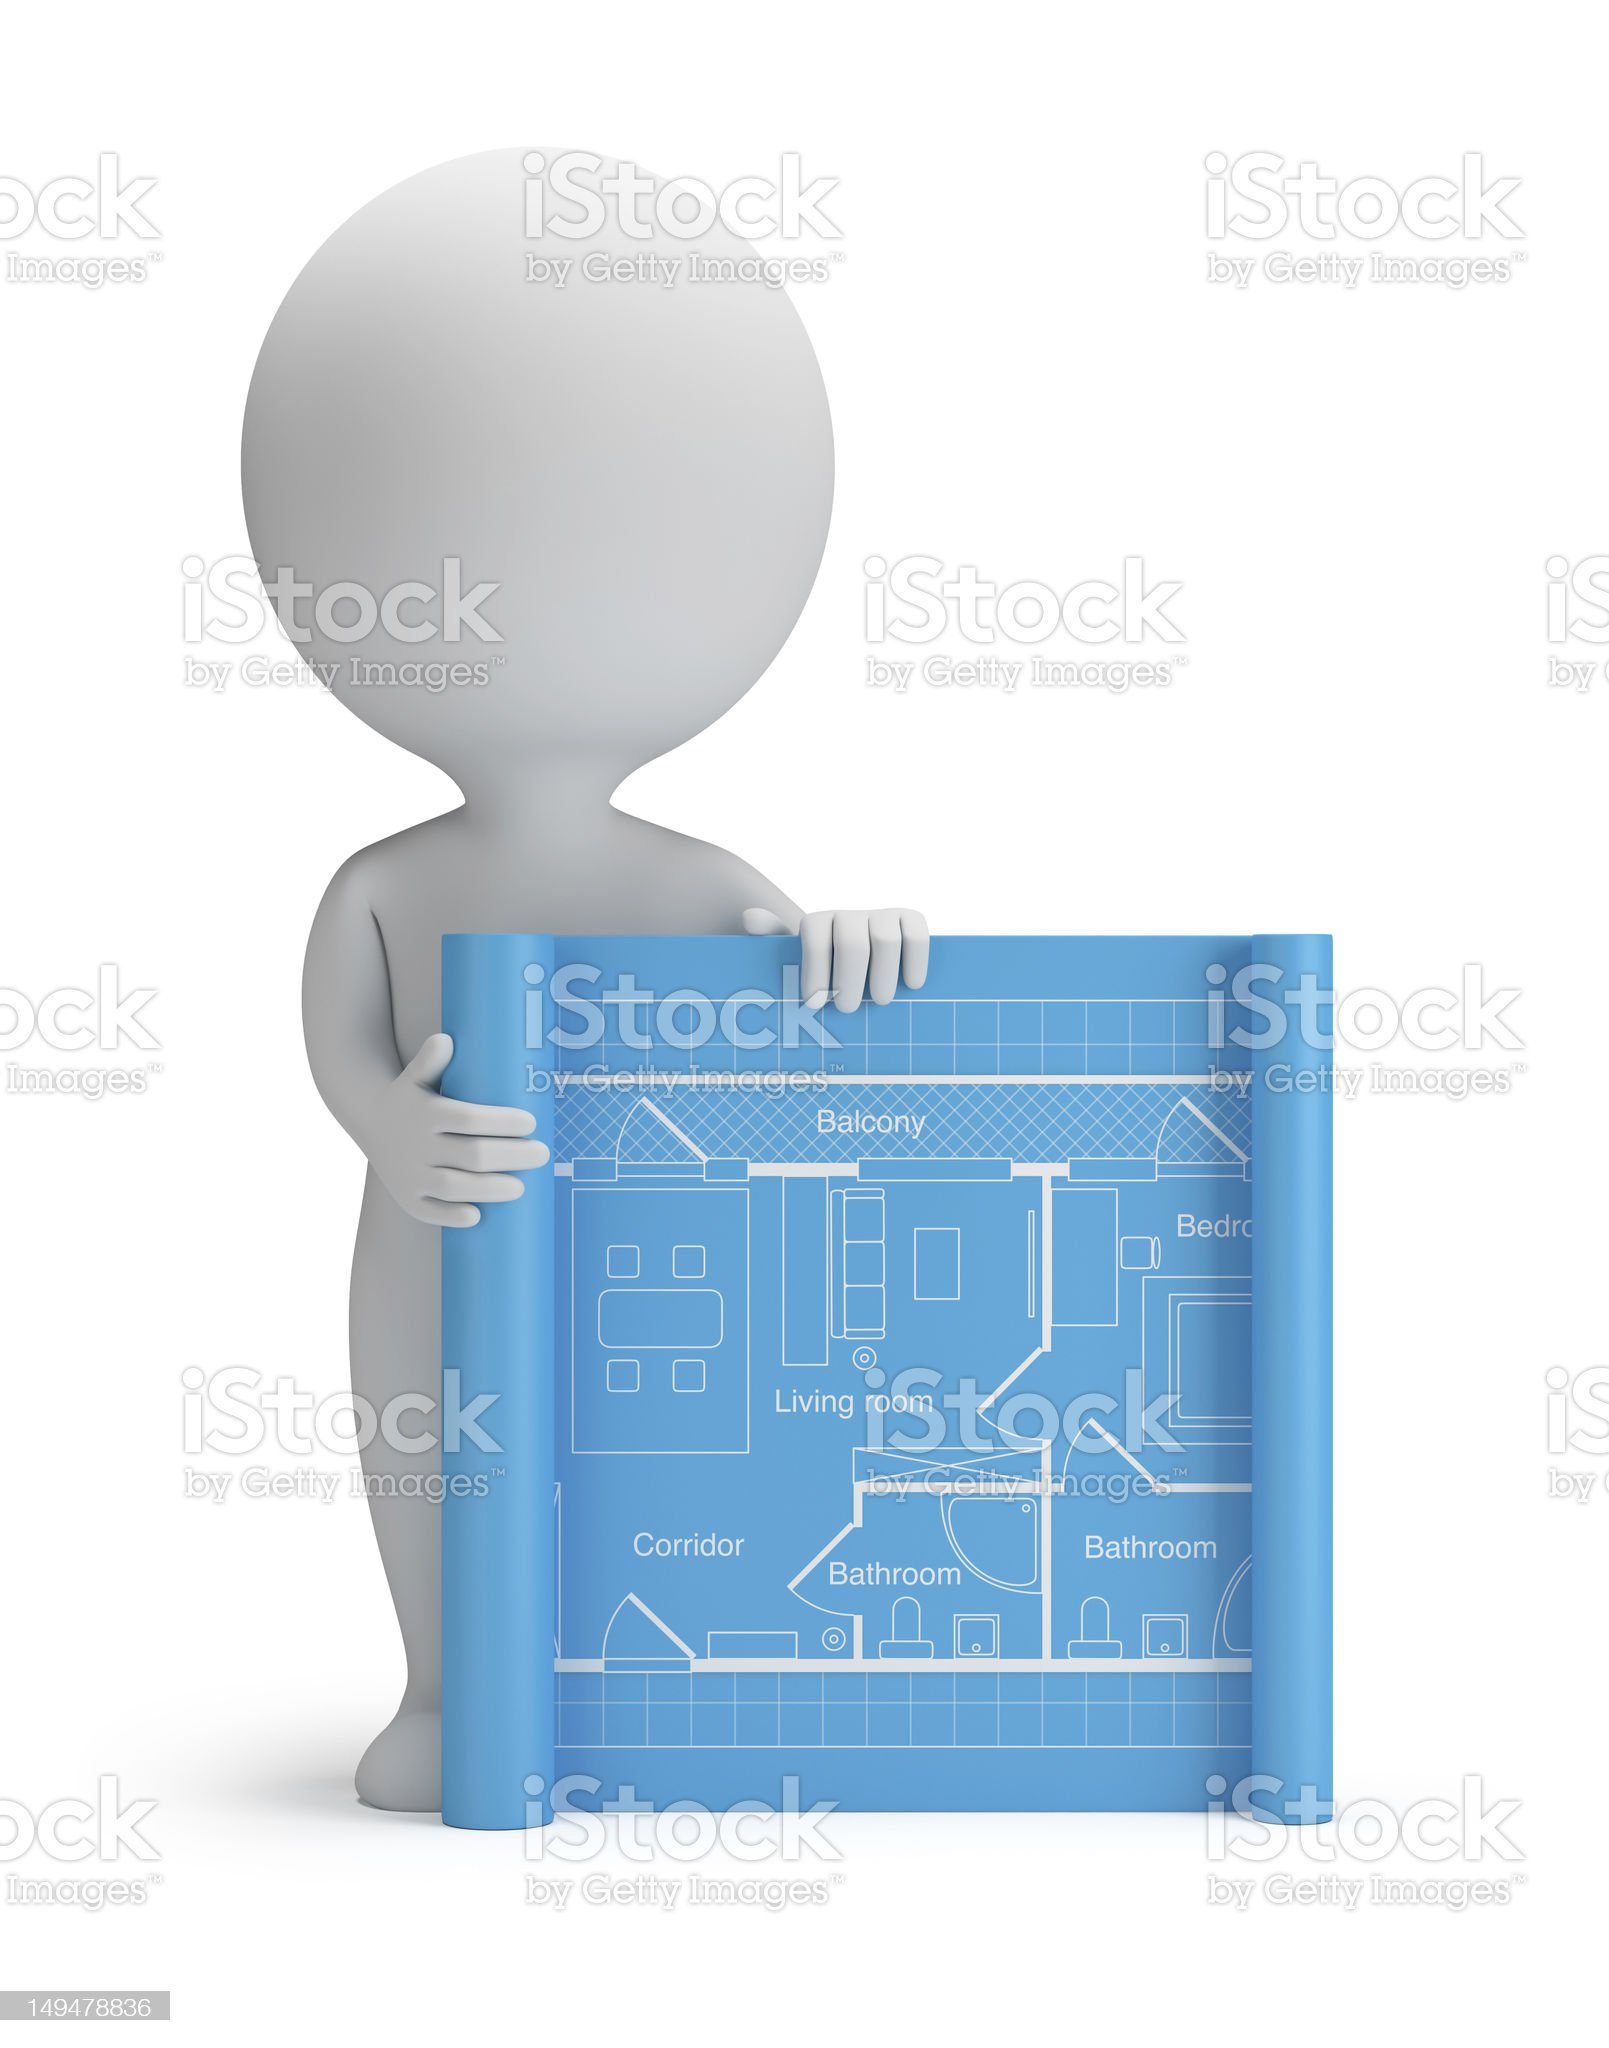 3d small people - blueprint royalty-free stock vector art